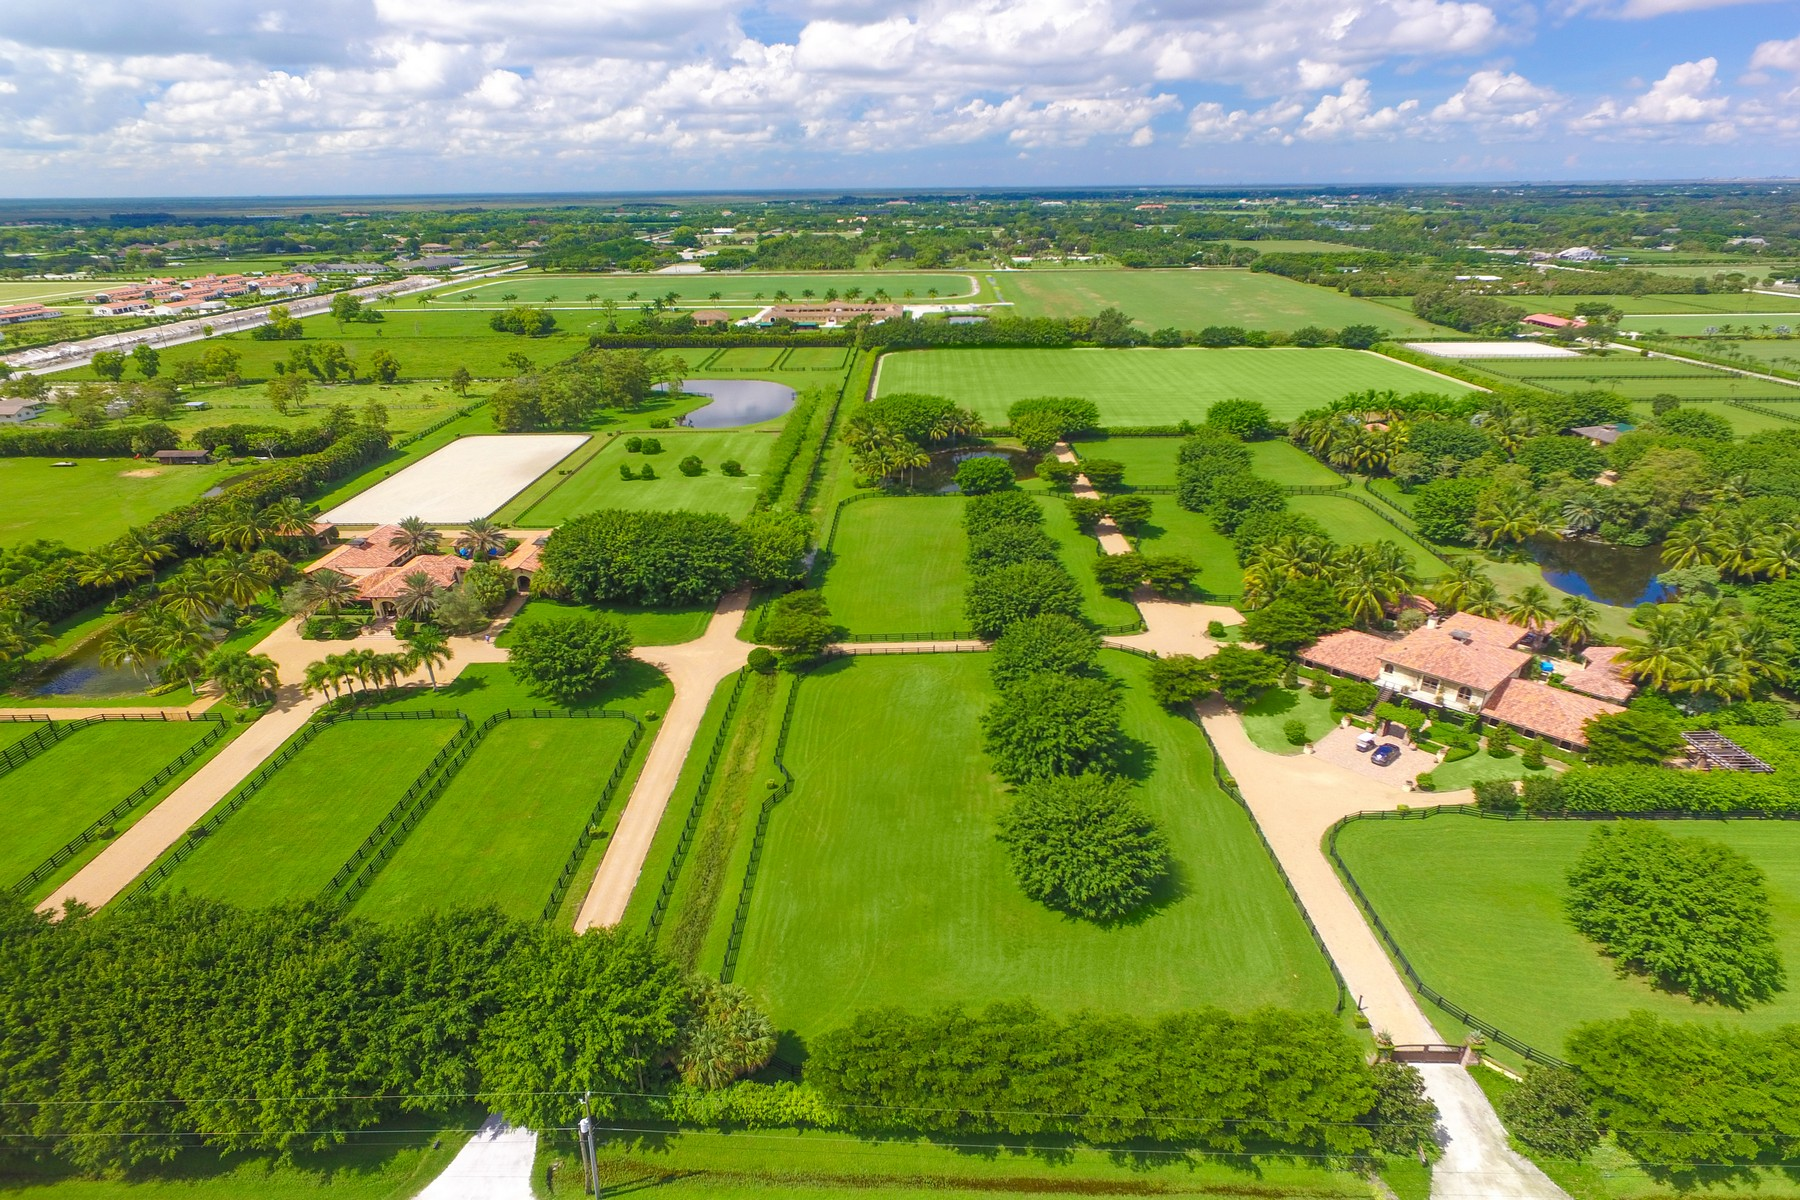 Maison unifamiliale pour l Vente à 4715 125th Ave South Wellington, Florida, 33414 États-Unis